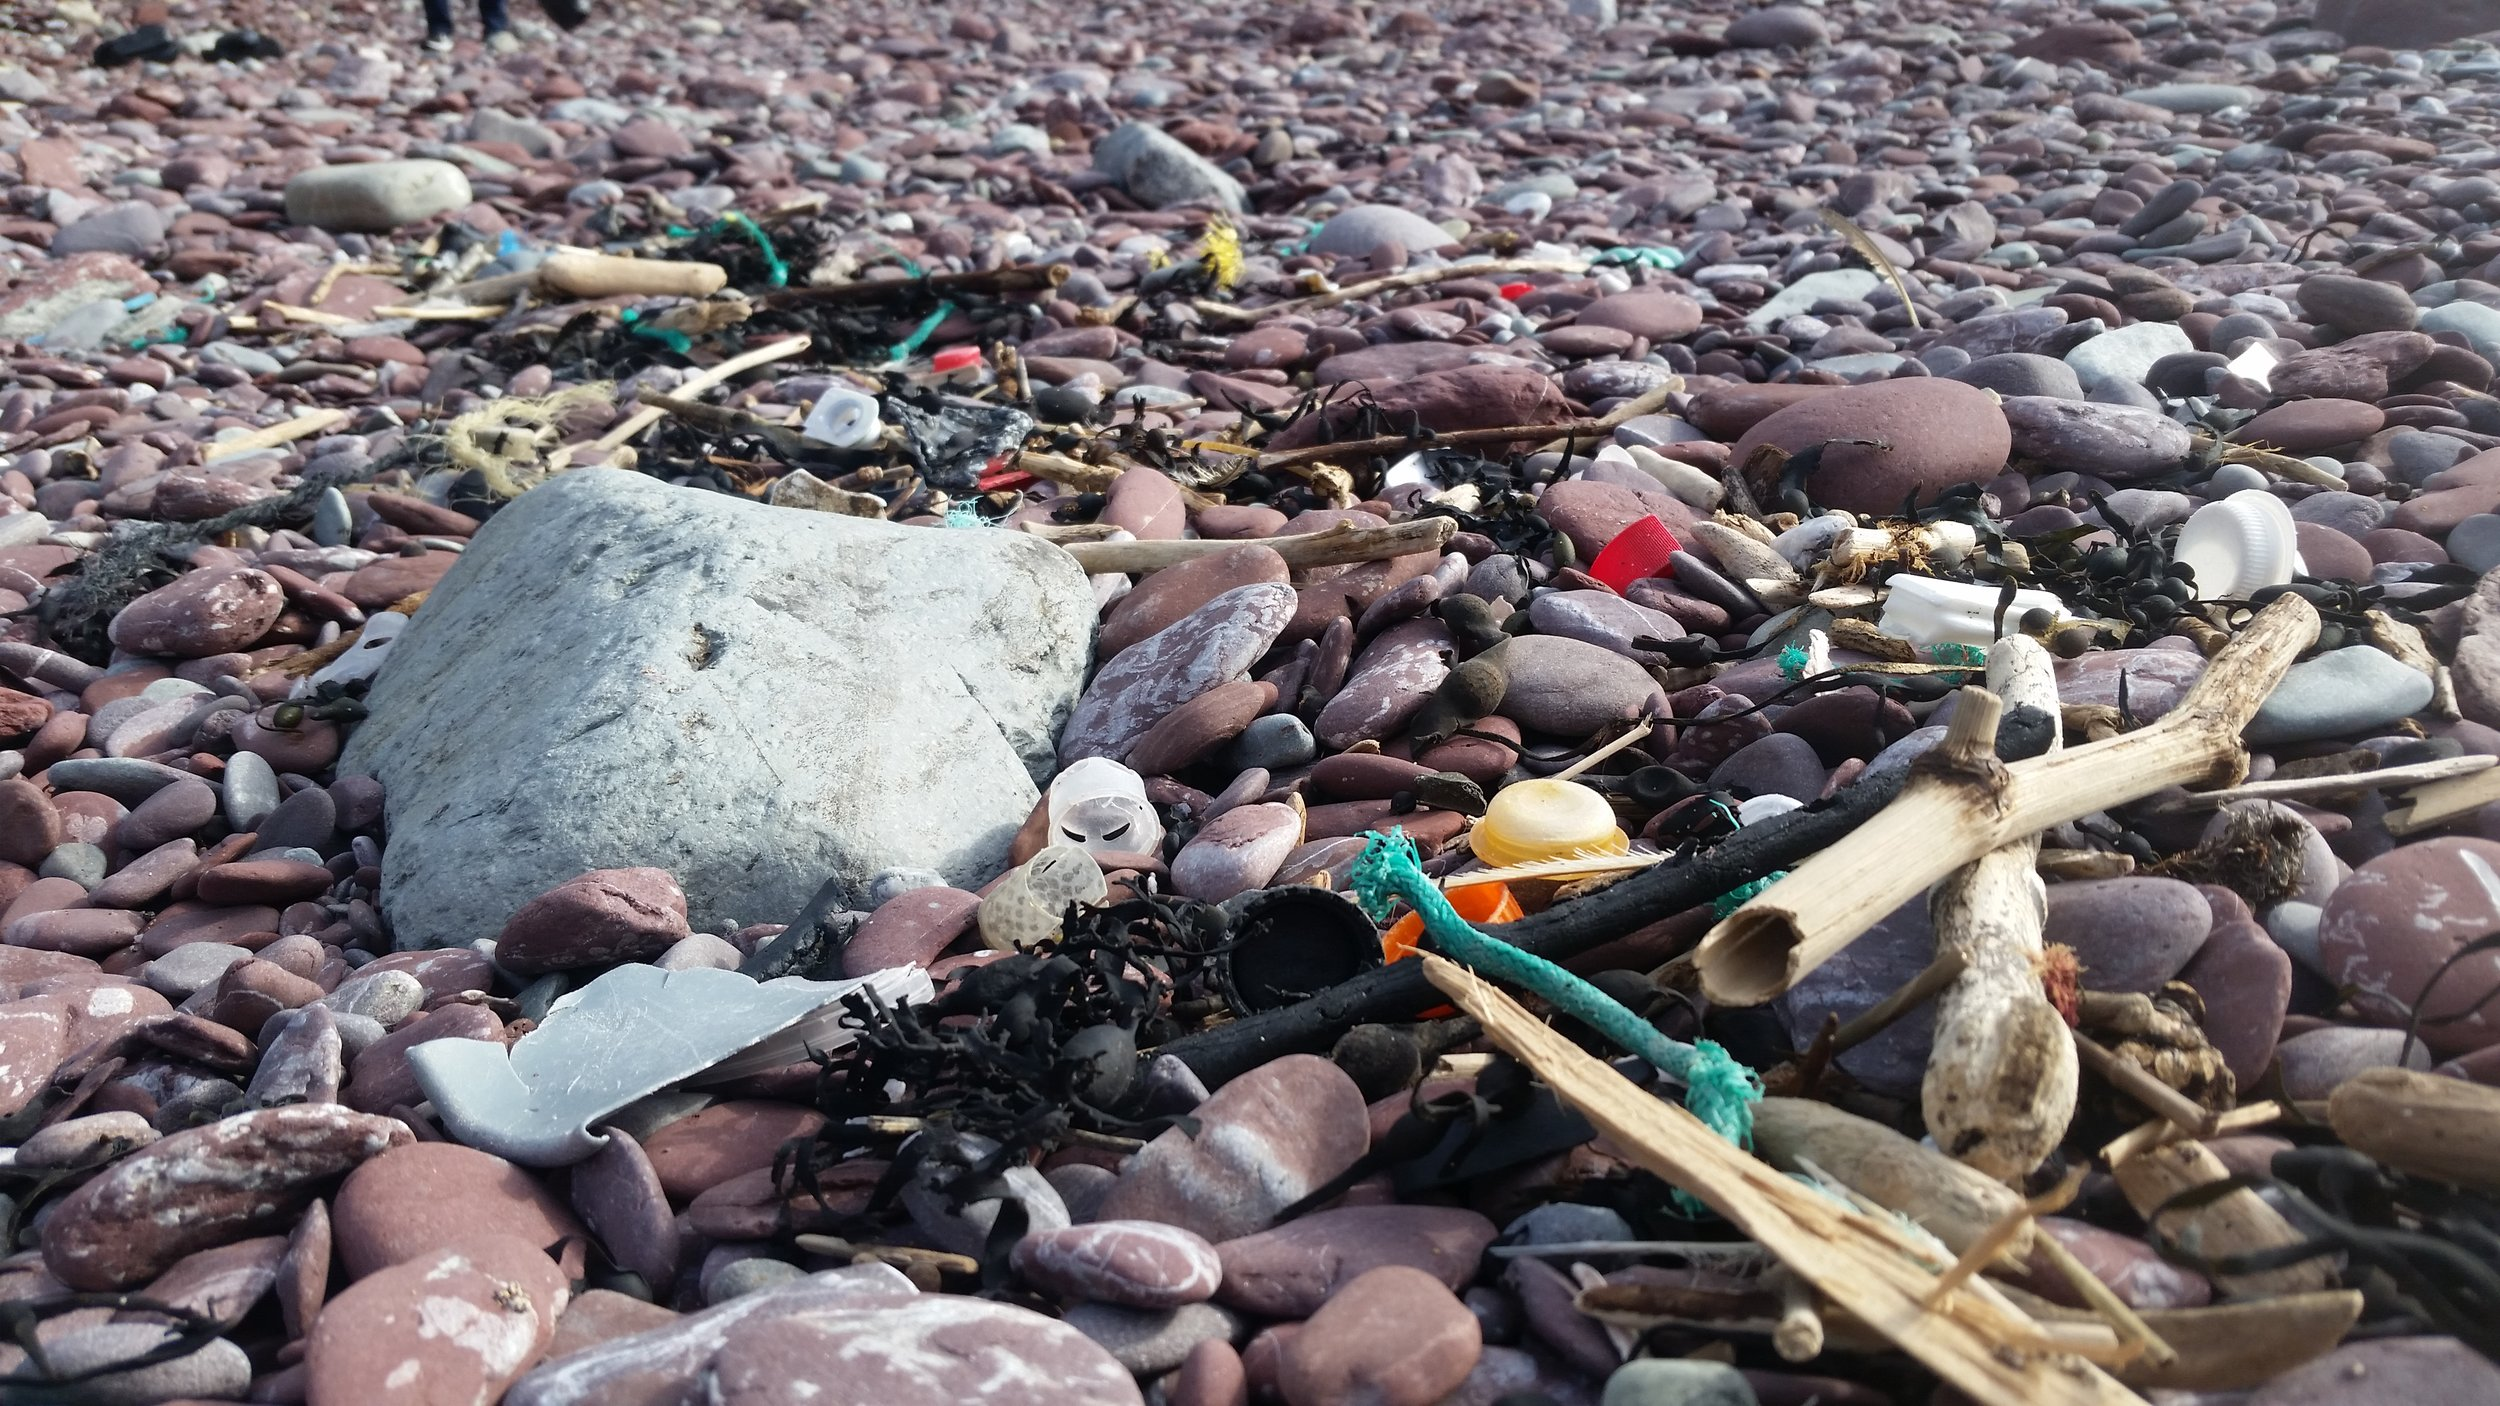 Example of the litter on beaches the algorithm would detect, measure and monitor.